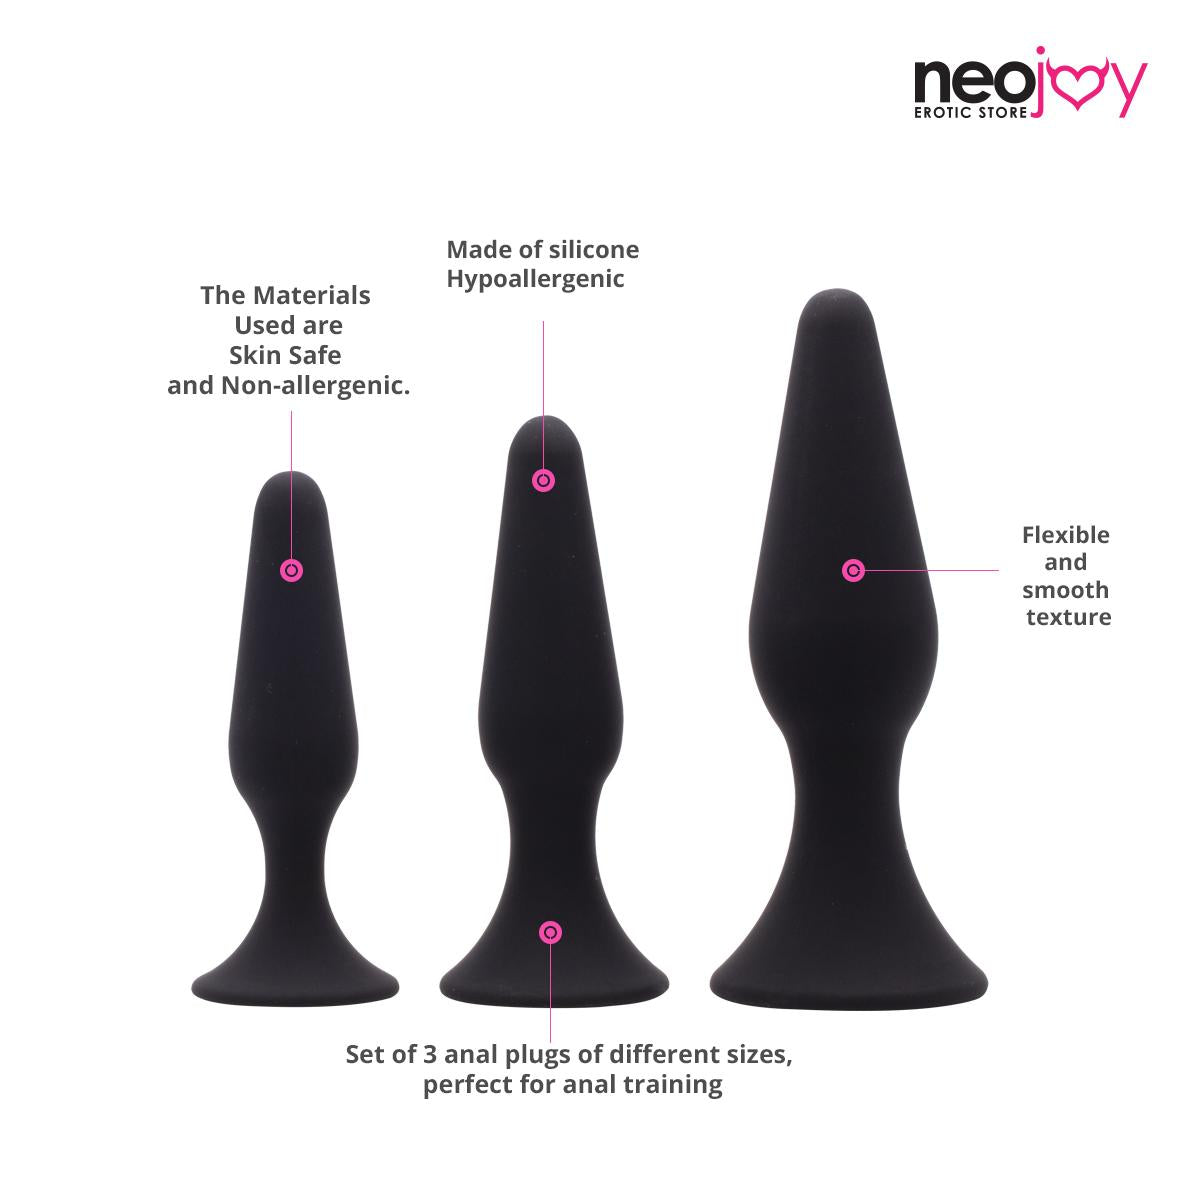 Neojoy Triple Butt Plug set - 3 sizes - lucidtoys.com